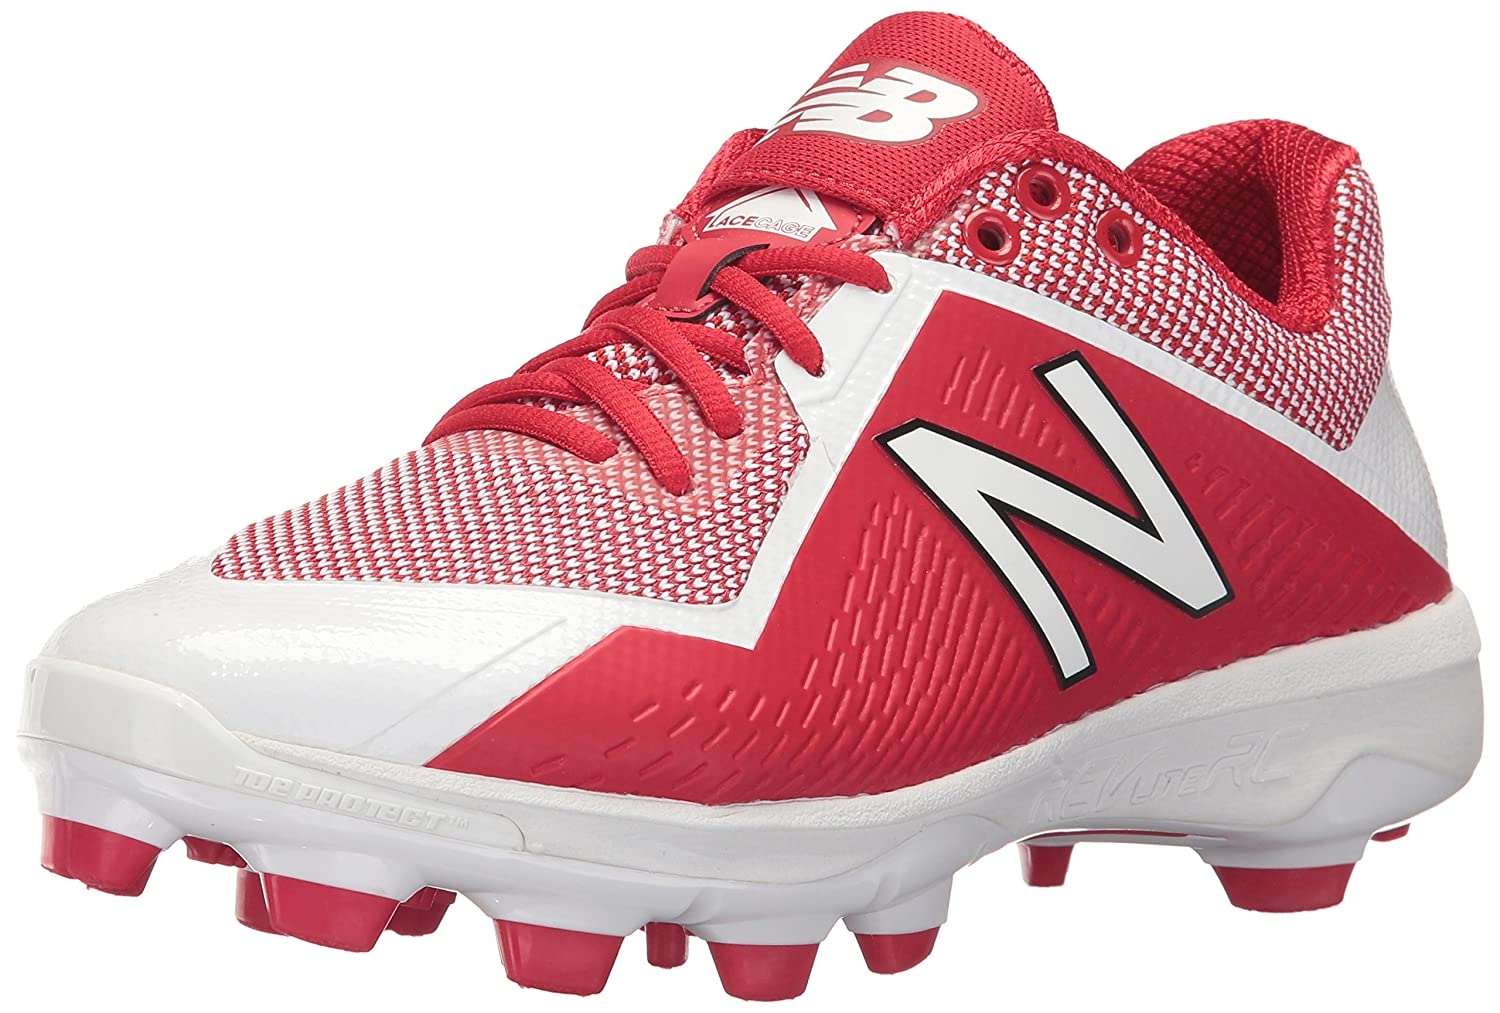 New Balance Men's PL4040v4 Molded Baseball schuhe, rot Weiß, 6 D US